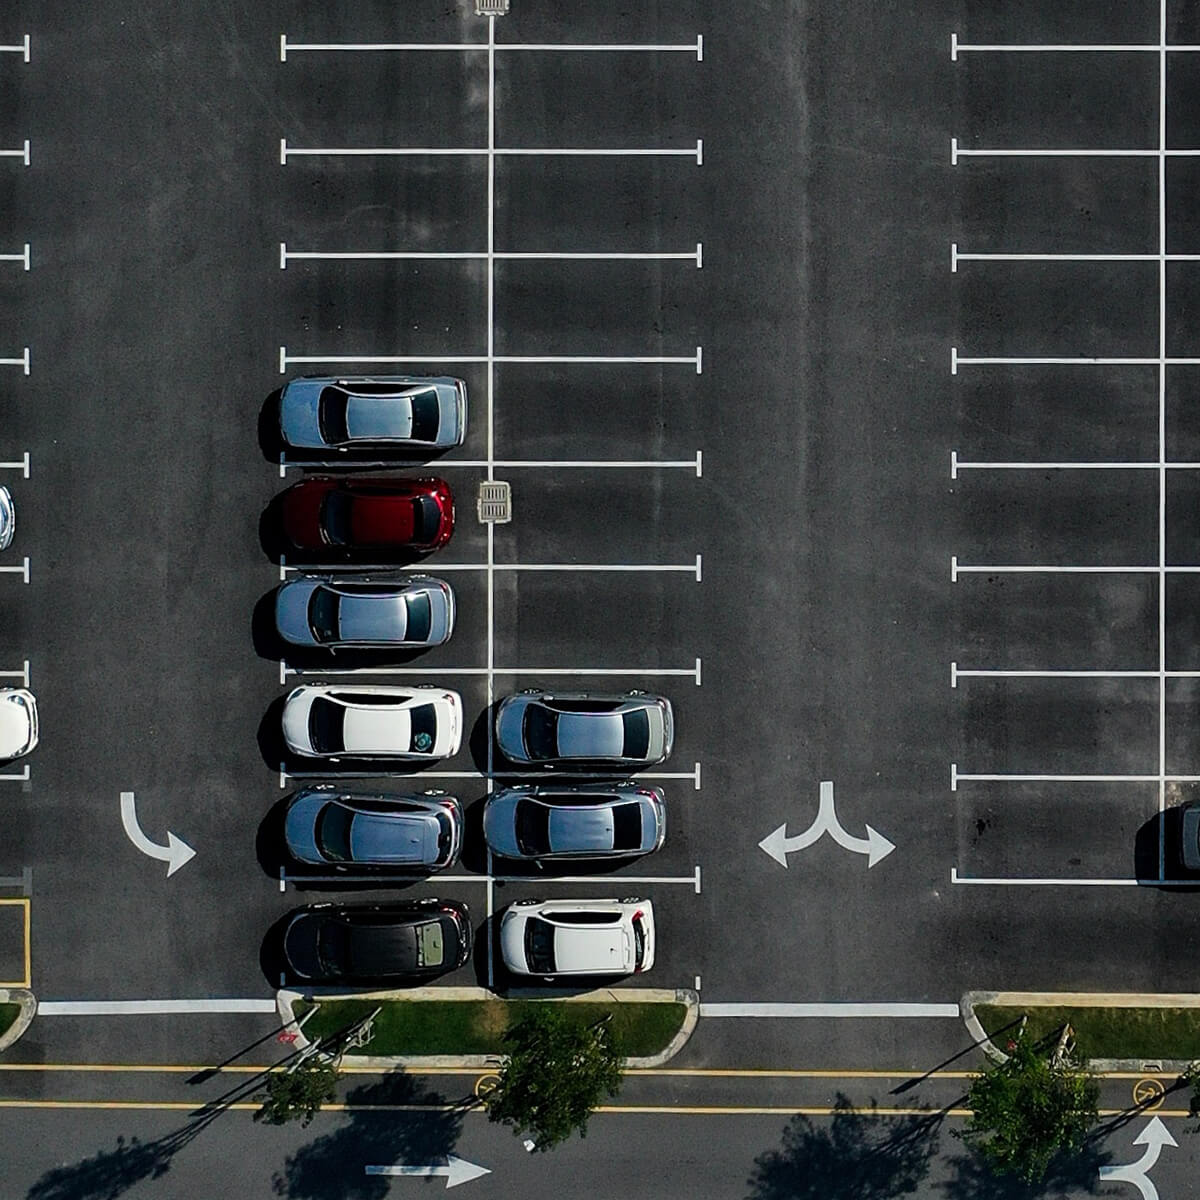 Photo of an elevated view of a parking lot with cars and empty spots